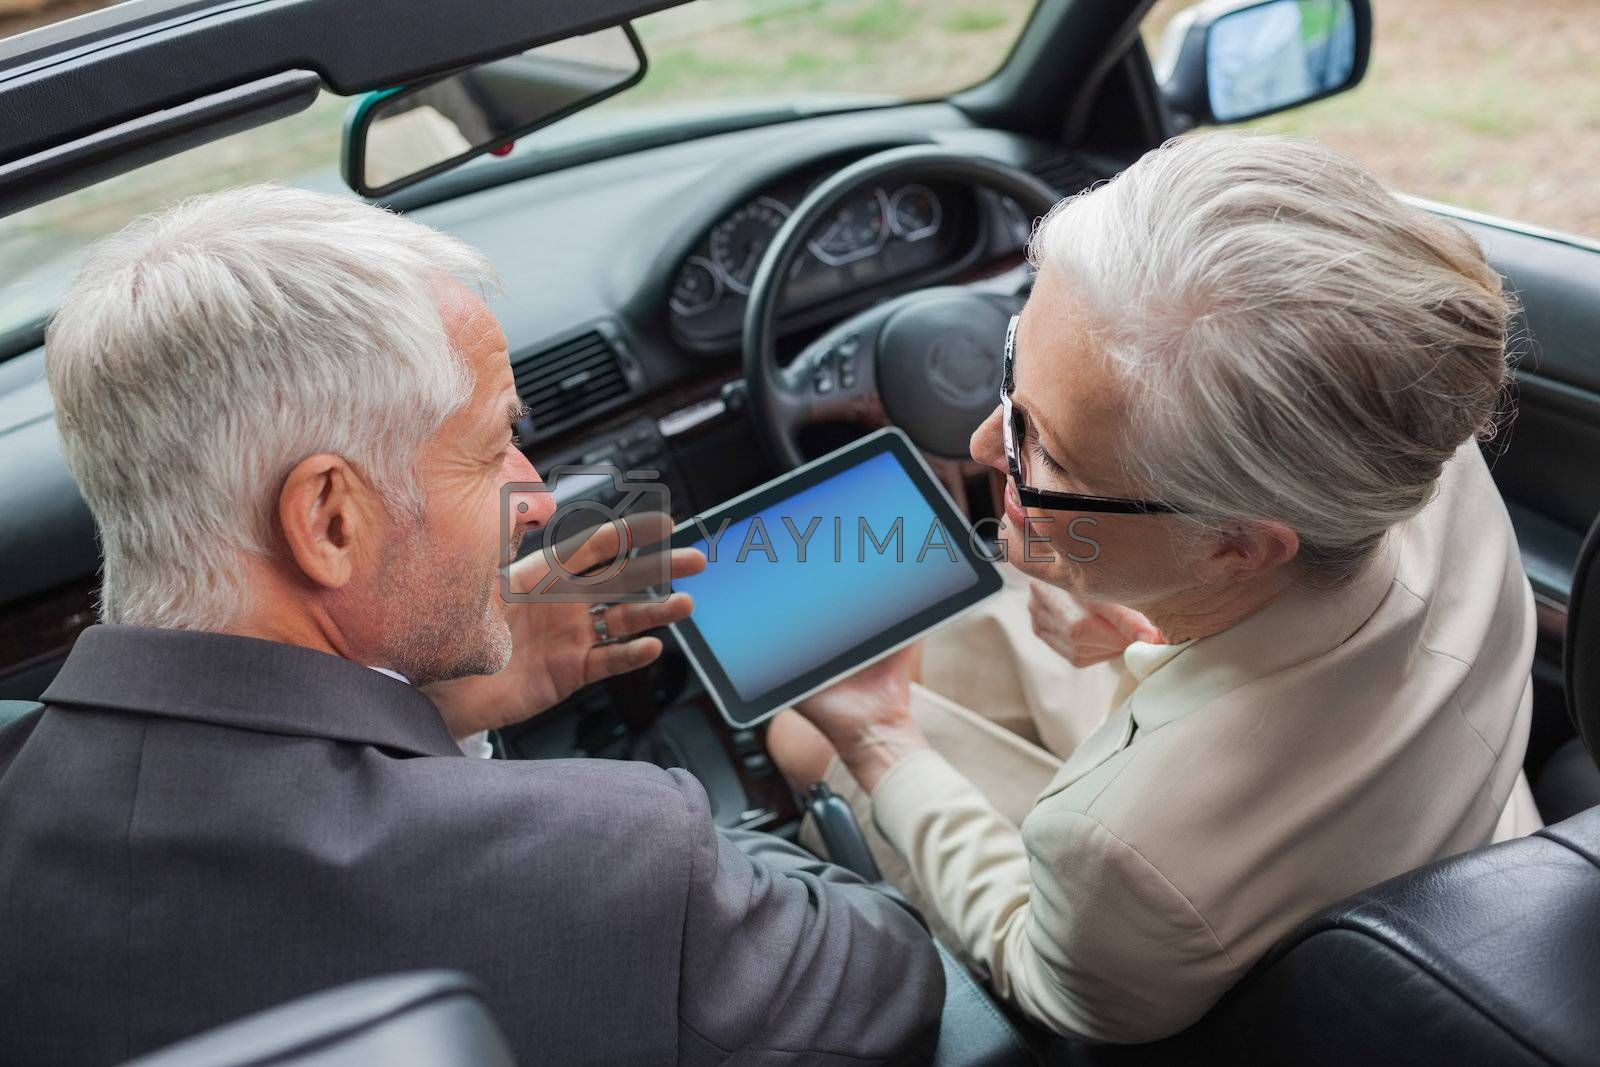 Smiling mature partners working together on tablet in classy car by Wavebreakmedia